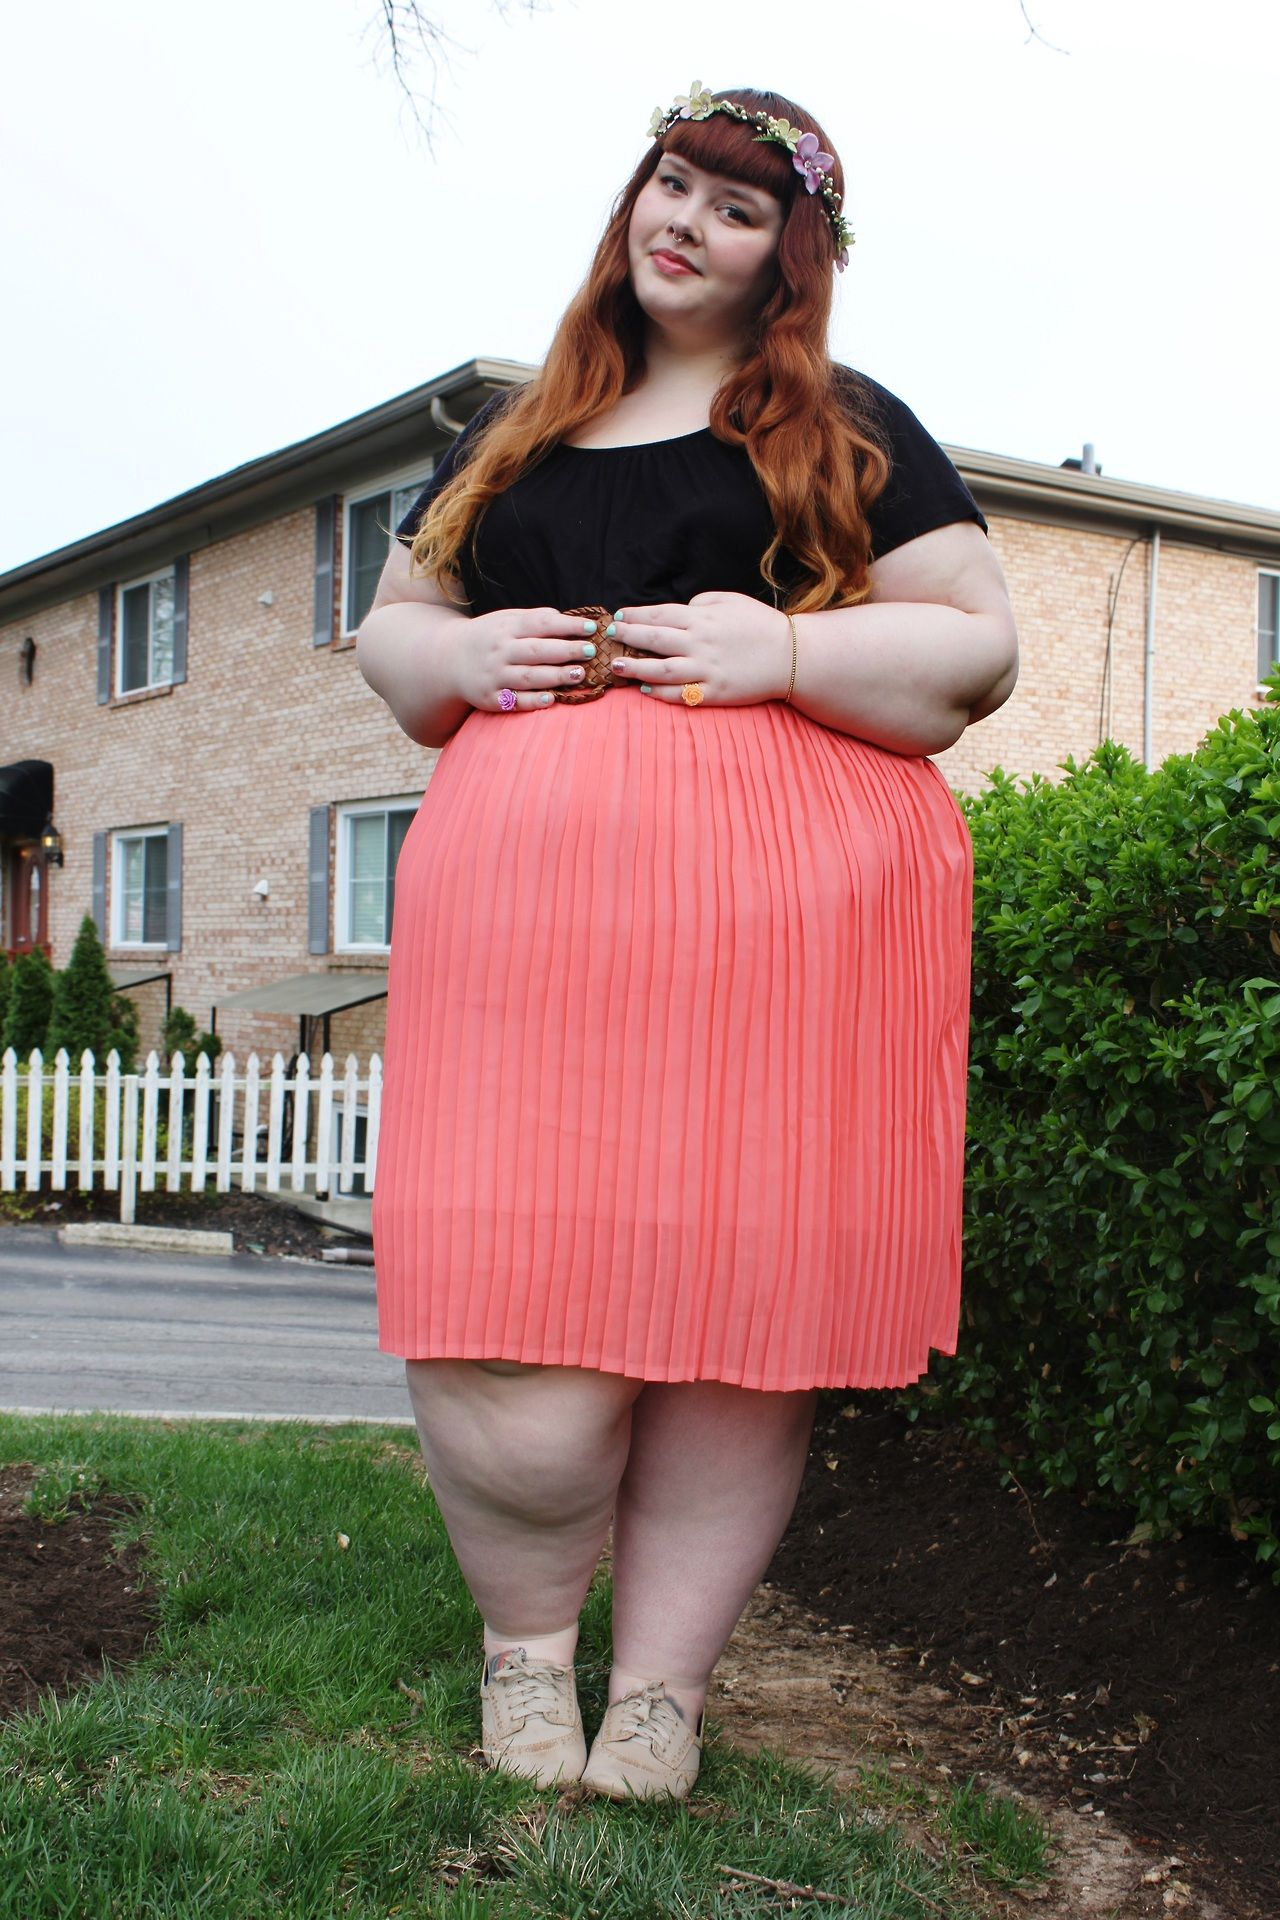 becca looks abfab in our lulu chiffon skirt & pretty flutter top